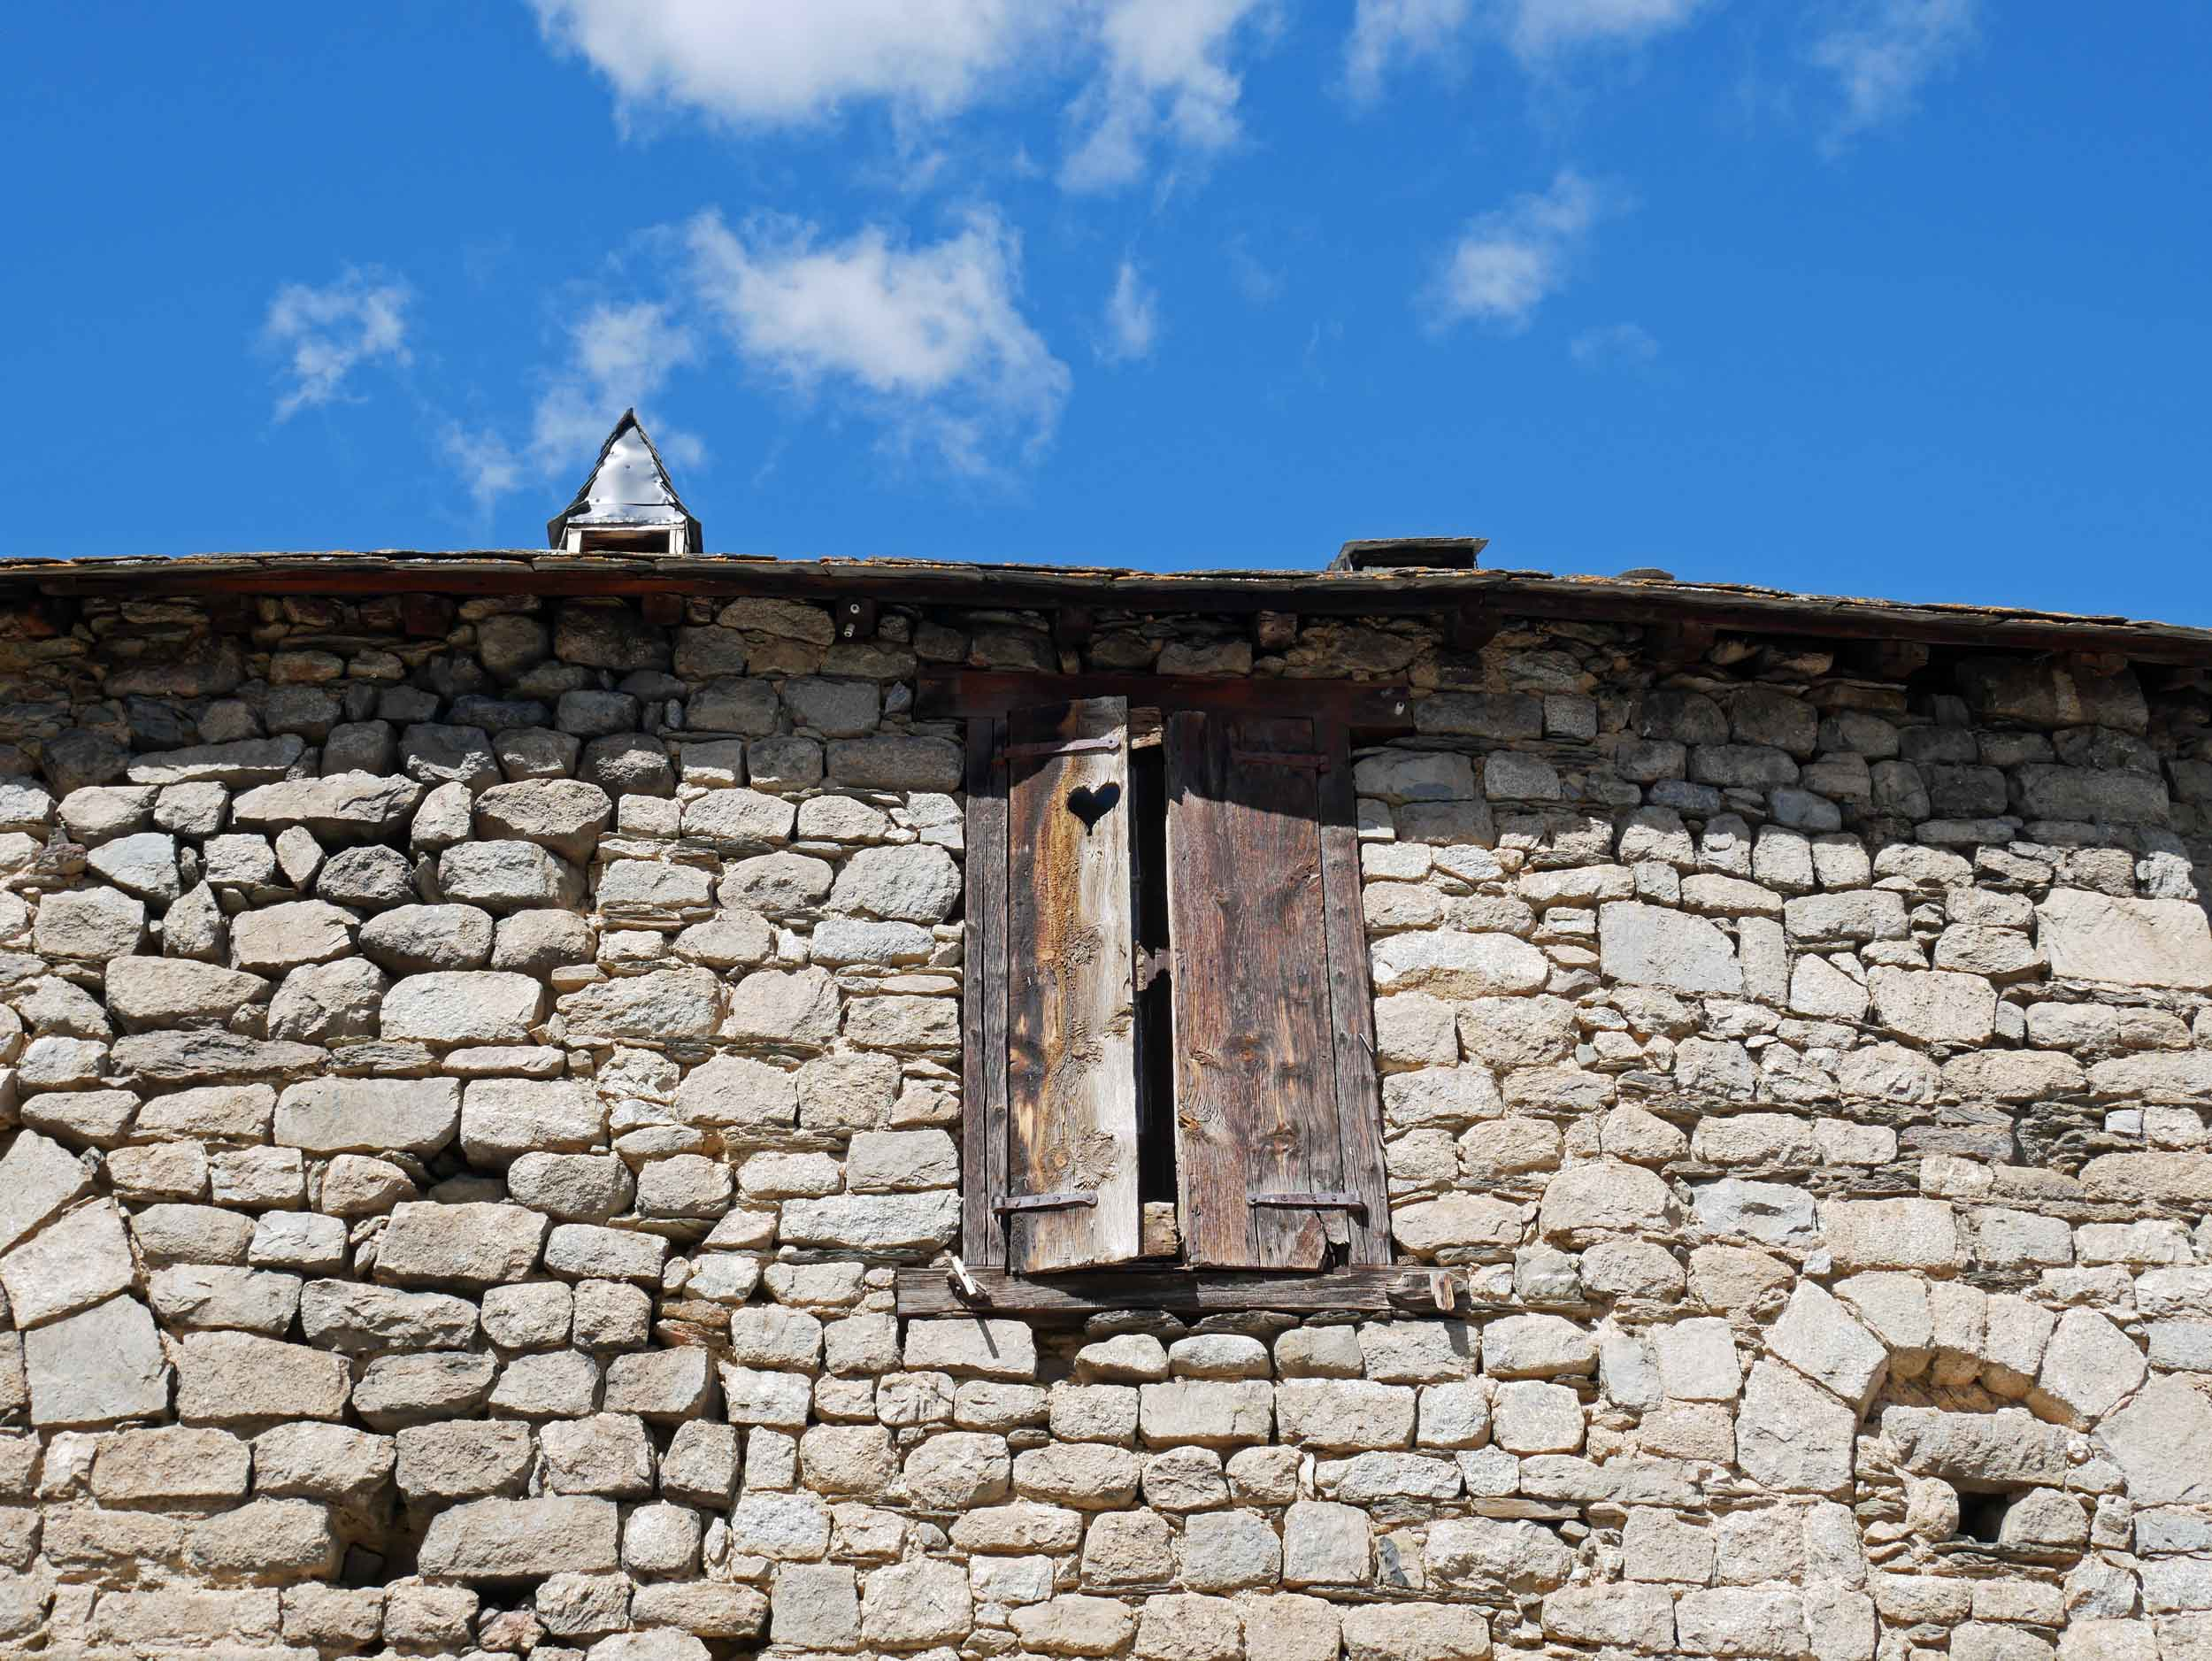 This heart-shaped window shutter in the tiny mountain village of Son caught our eye.